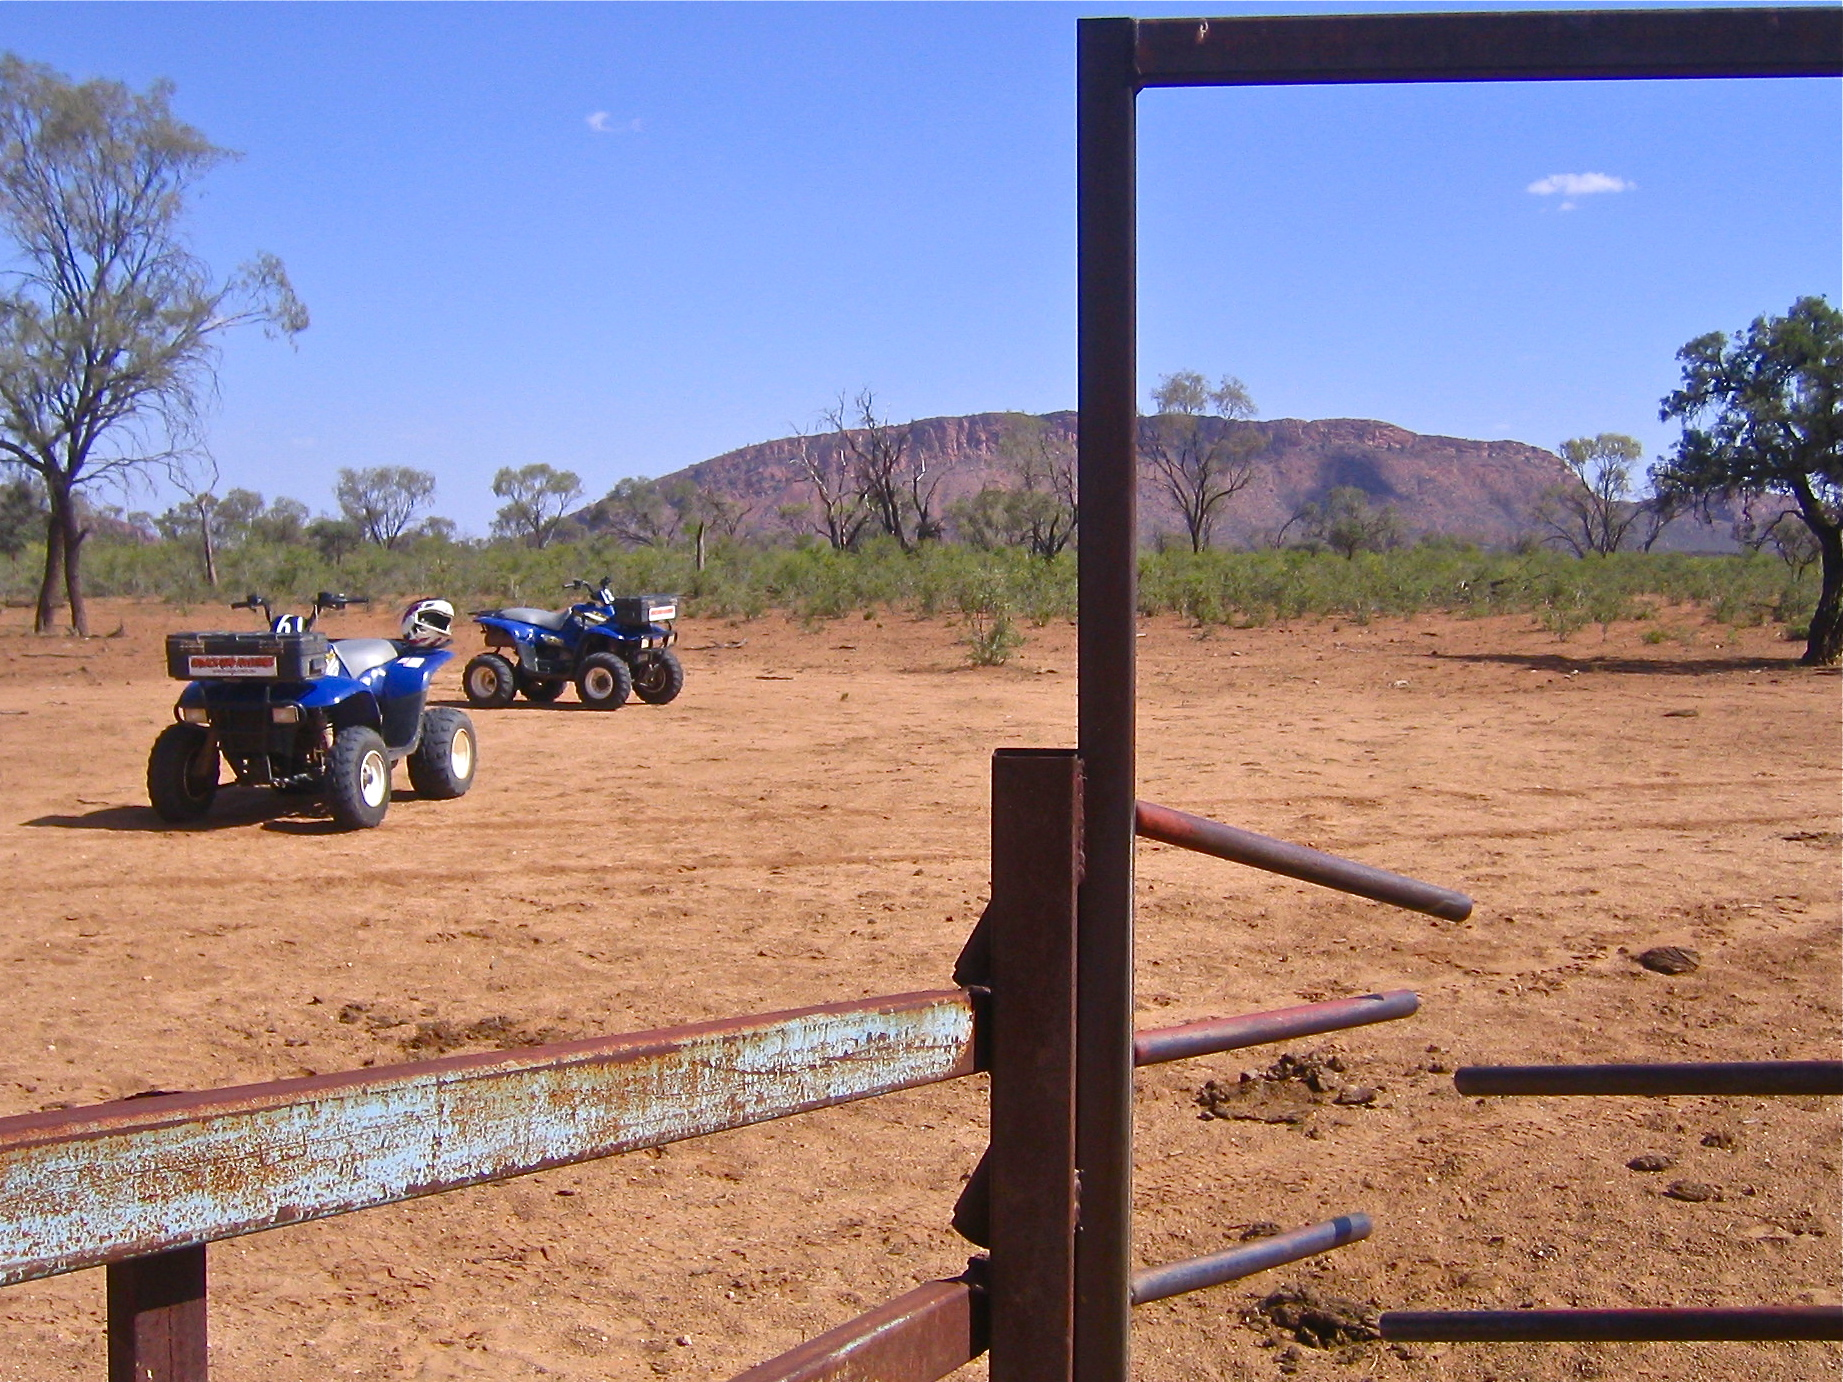 The Australian Outback Australia Alice Springs 4 wheeling aroundtheworldwithjustin.com